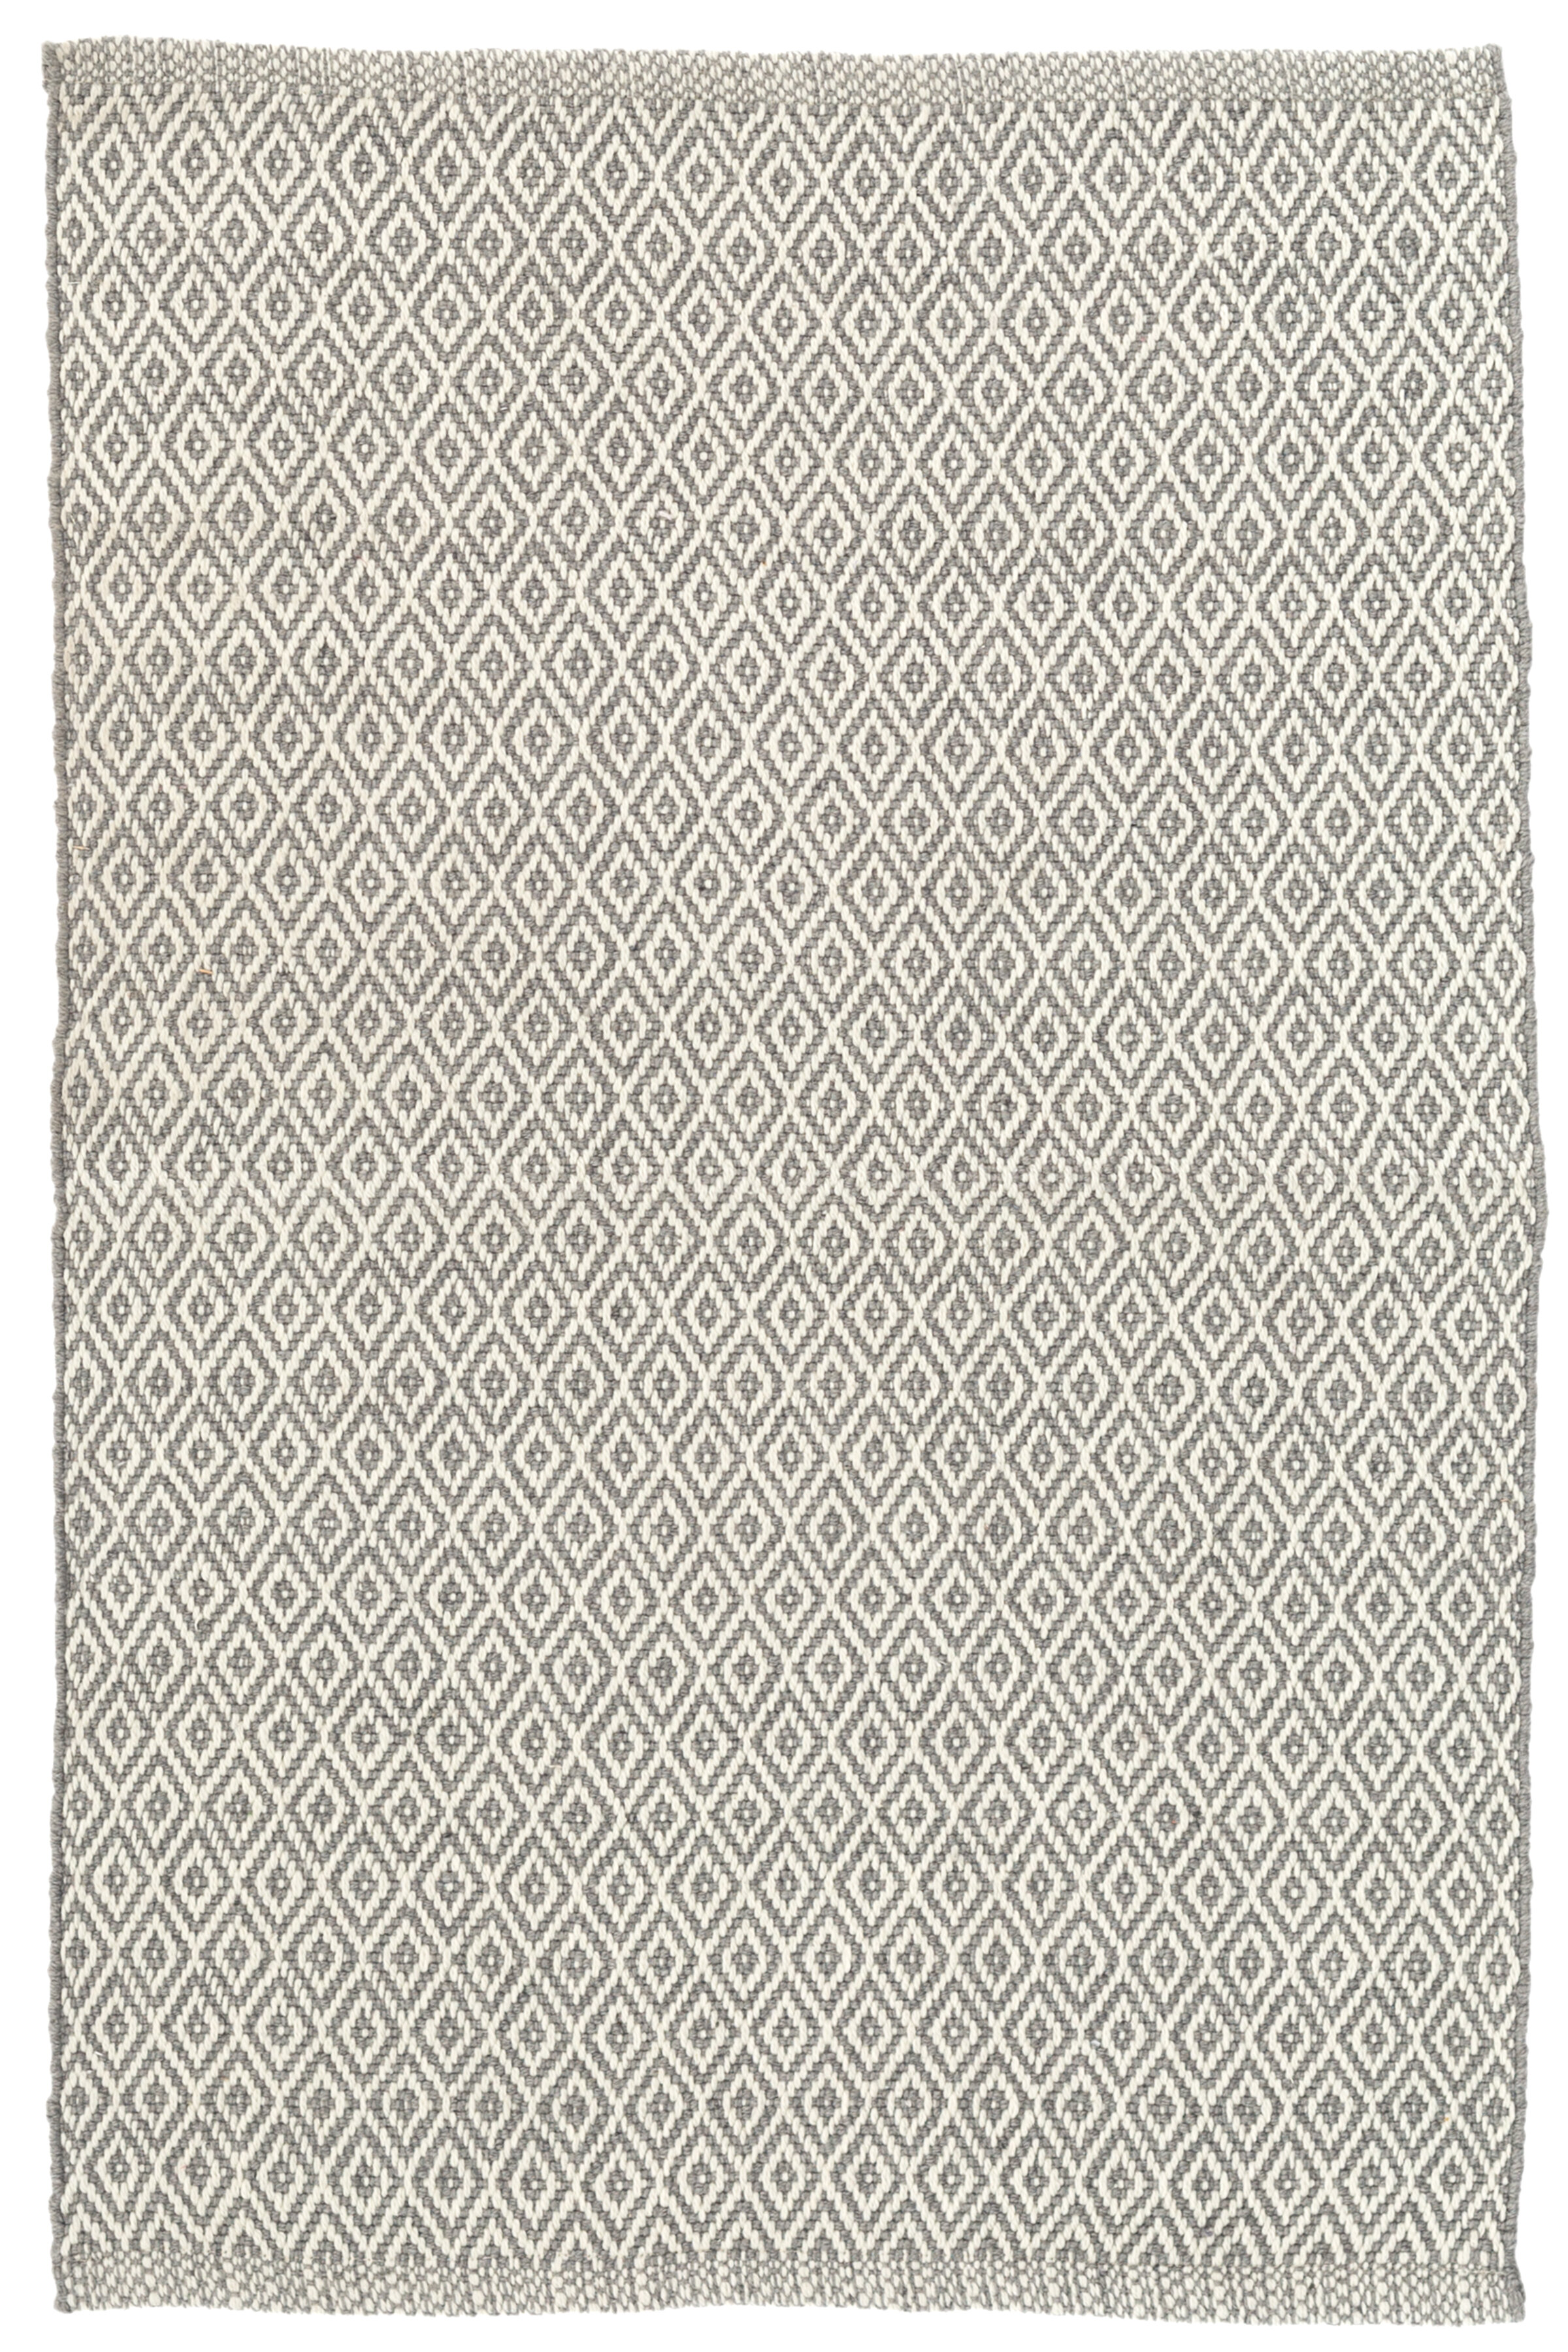 wool rug and collection white hand hooked grywht products area fine by bd amalfi gray in